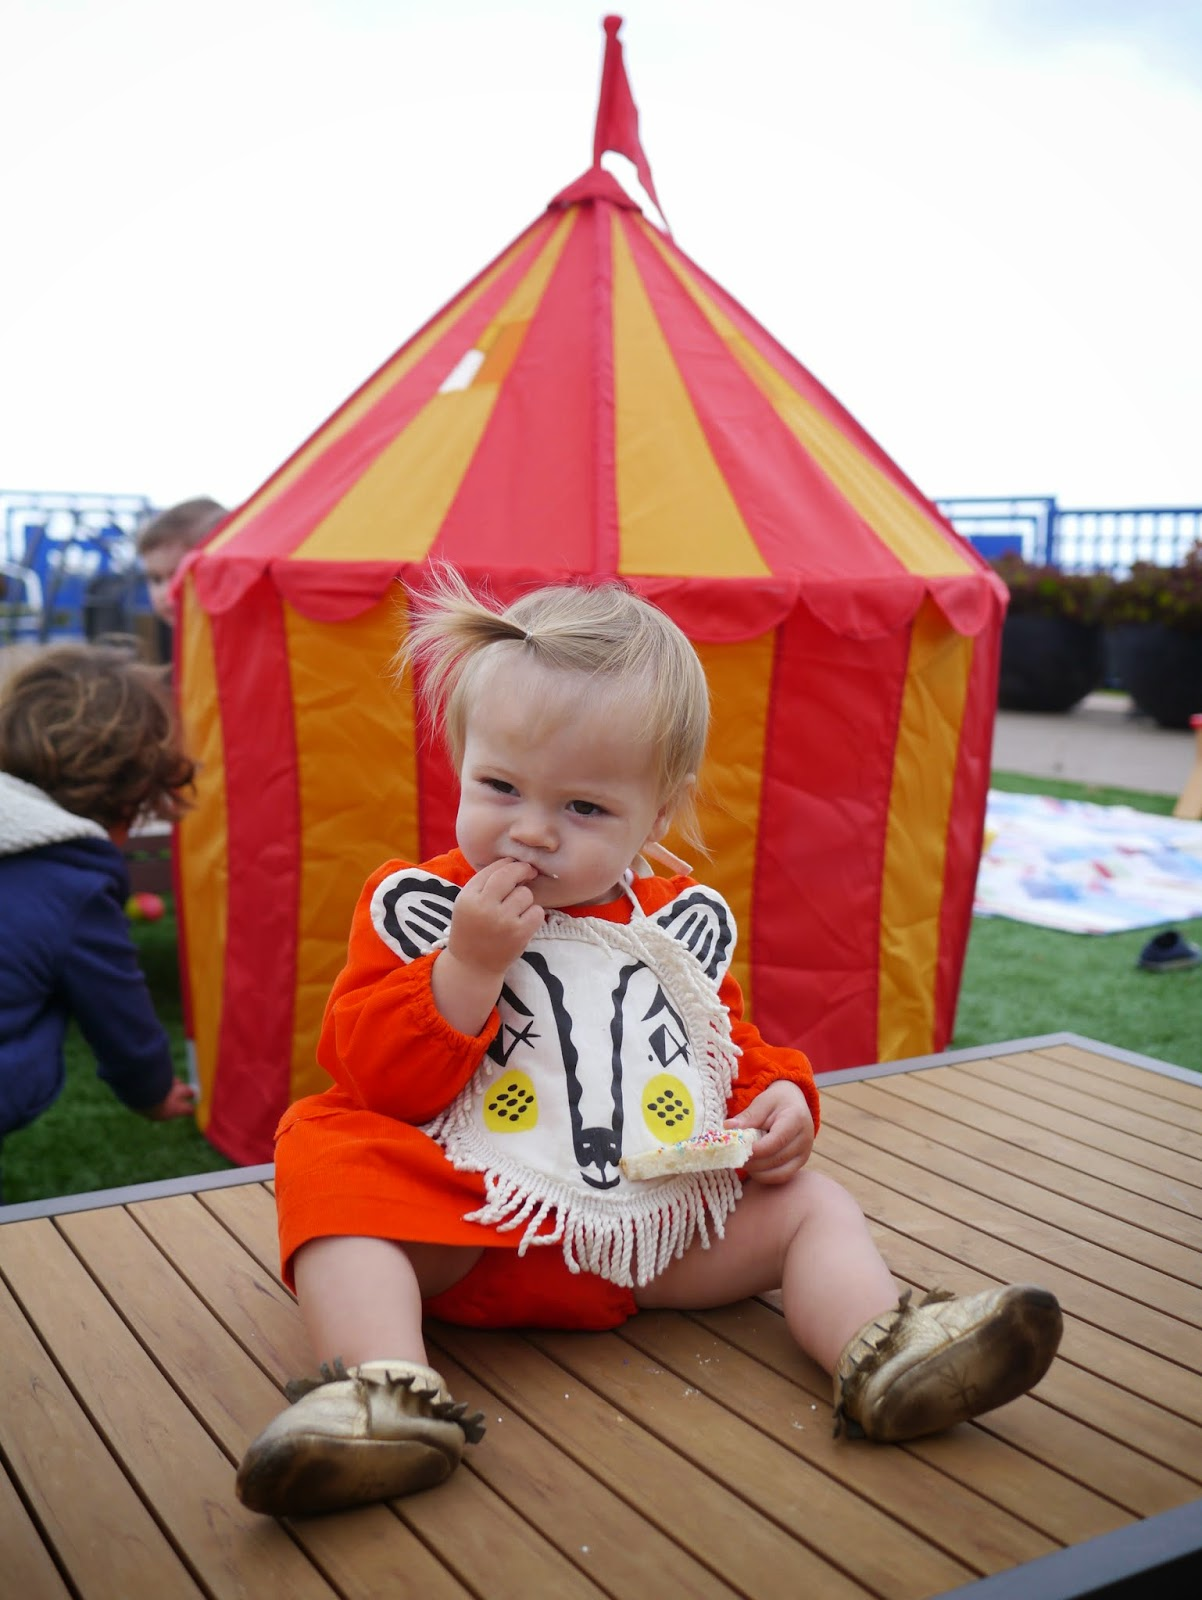 on saturday we celebrated birthday with a circus themed party with friends up on our roof deck i had been a little worried that weu0027d have to